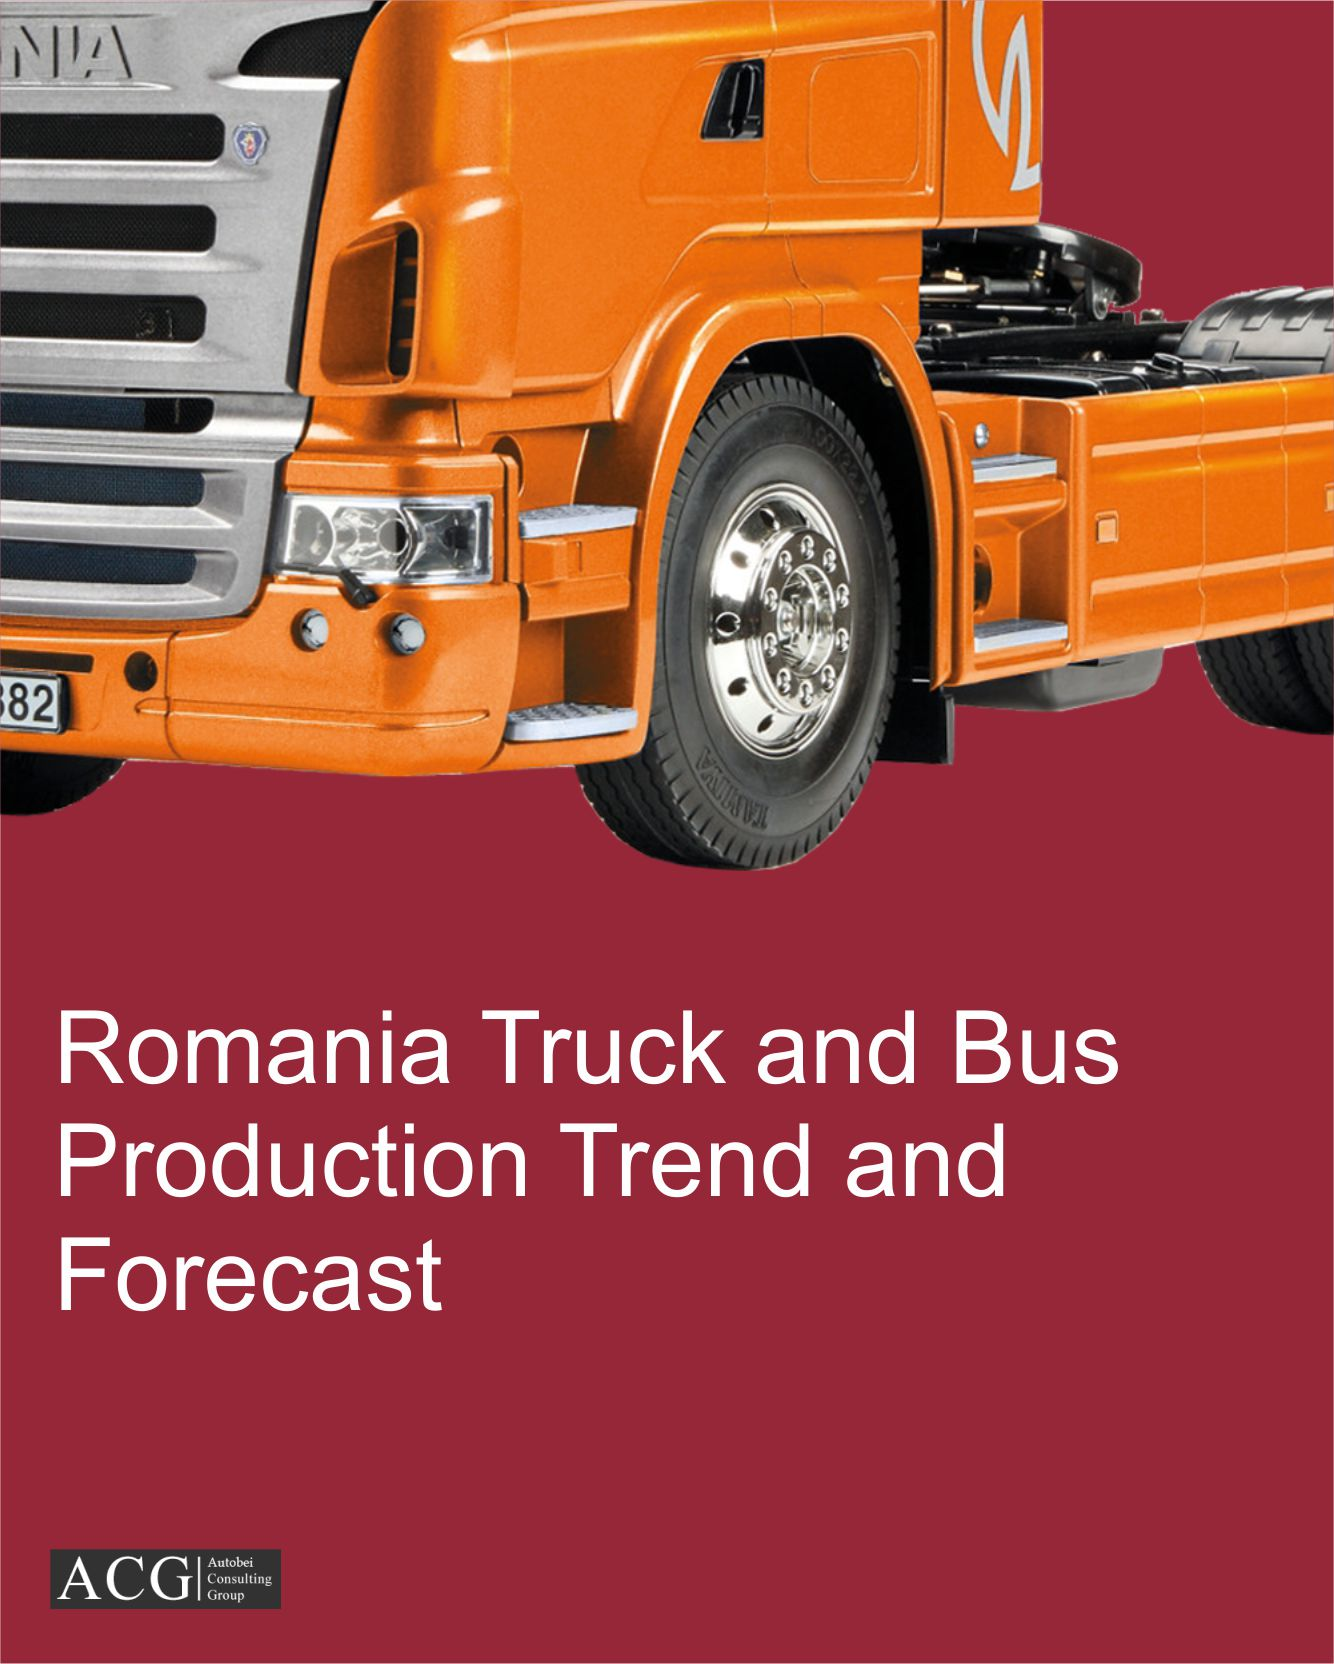 Romania Commercial Vehicle Trend and Forecast